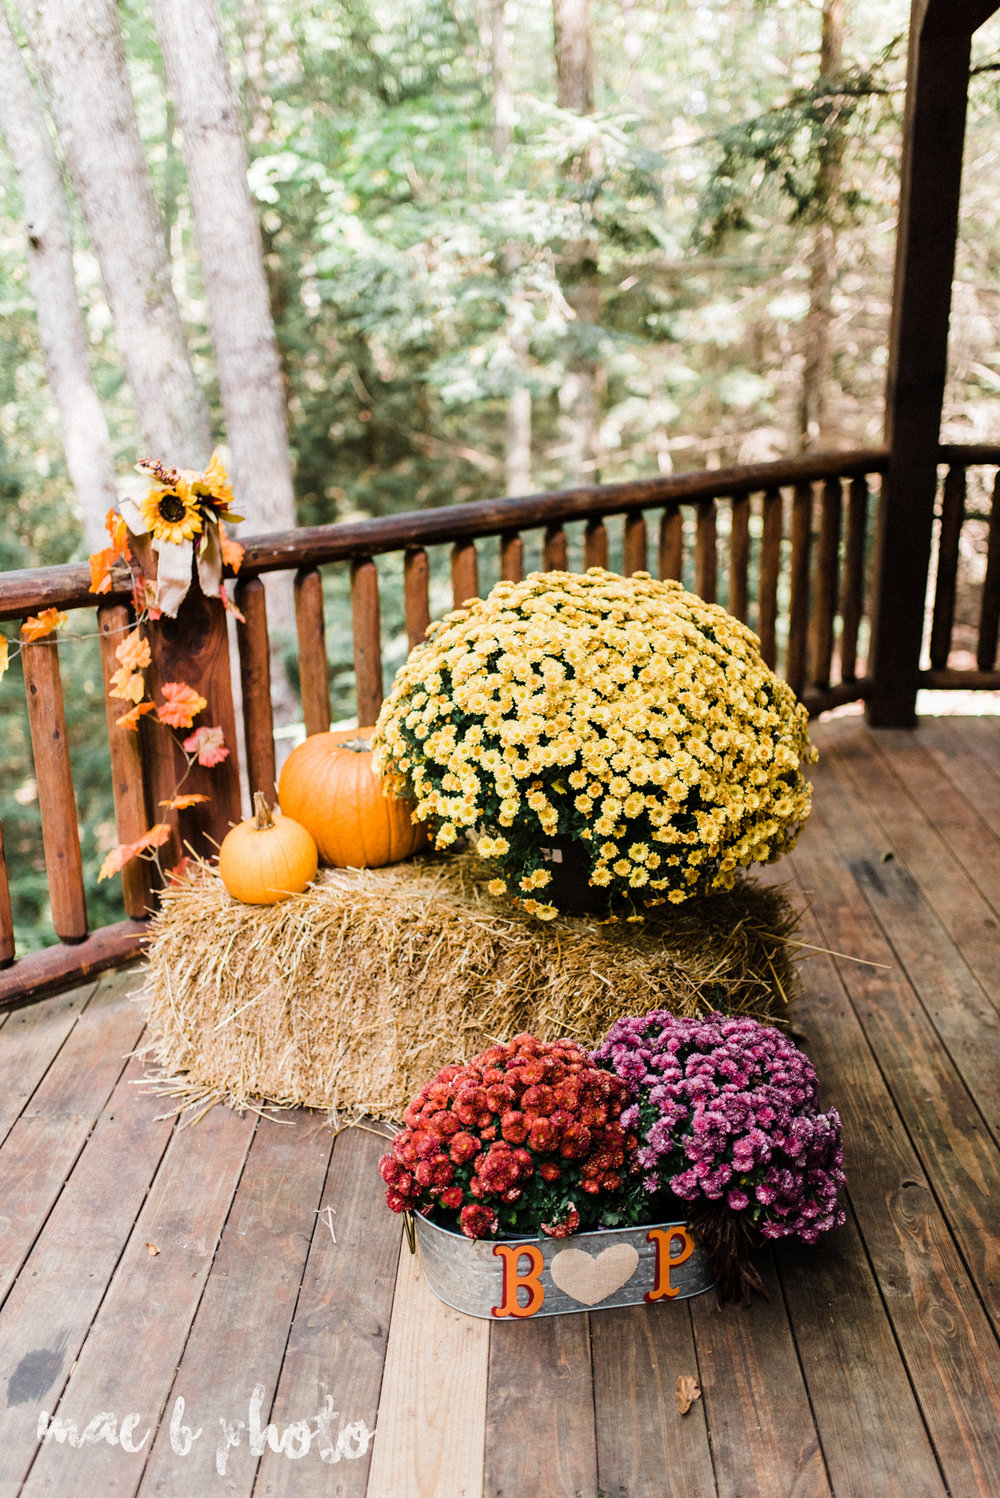 bobbi and pat's intimate fall cabin elopement in hocking hills old man's cave and rock house in logan ohio photographed by youngstown wedding photographer mae b photo-25.jpg